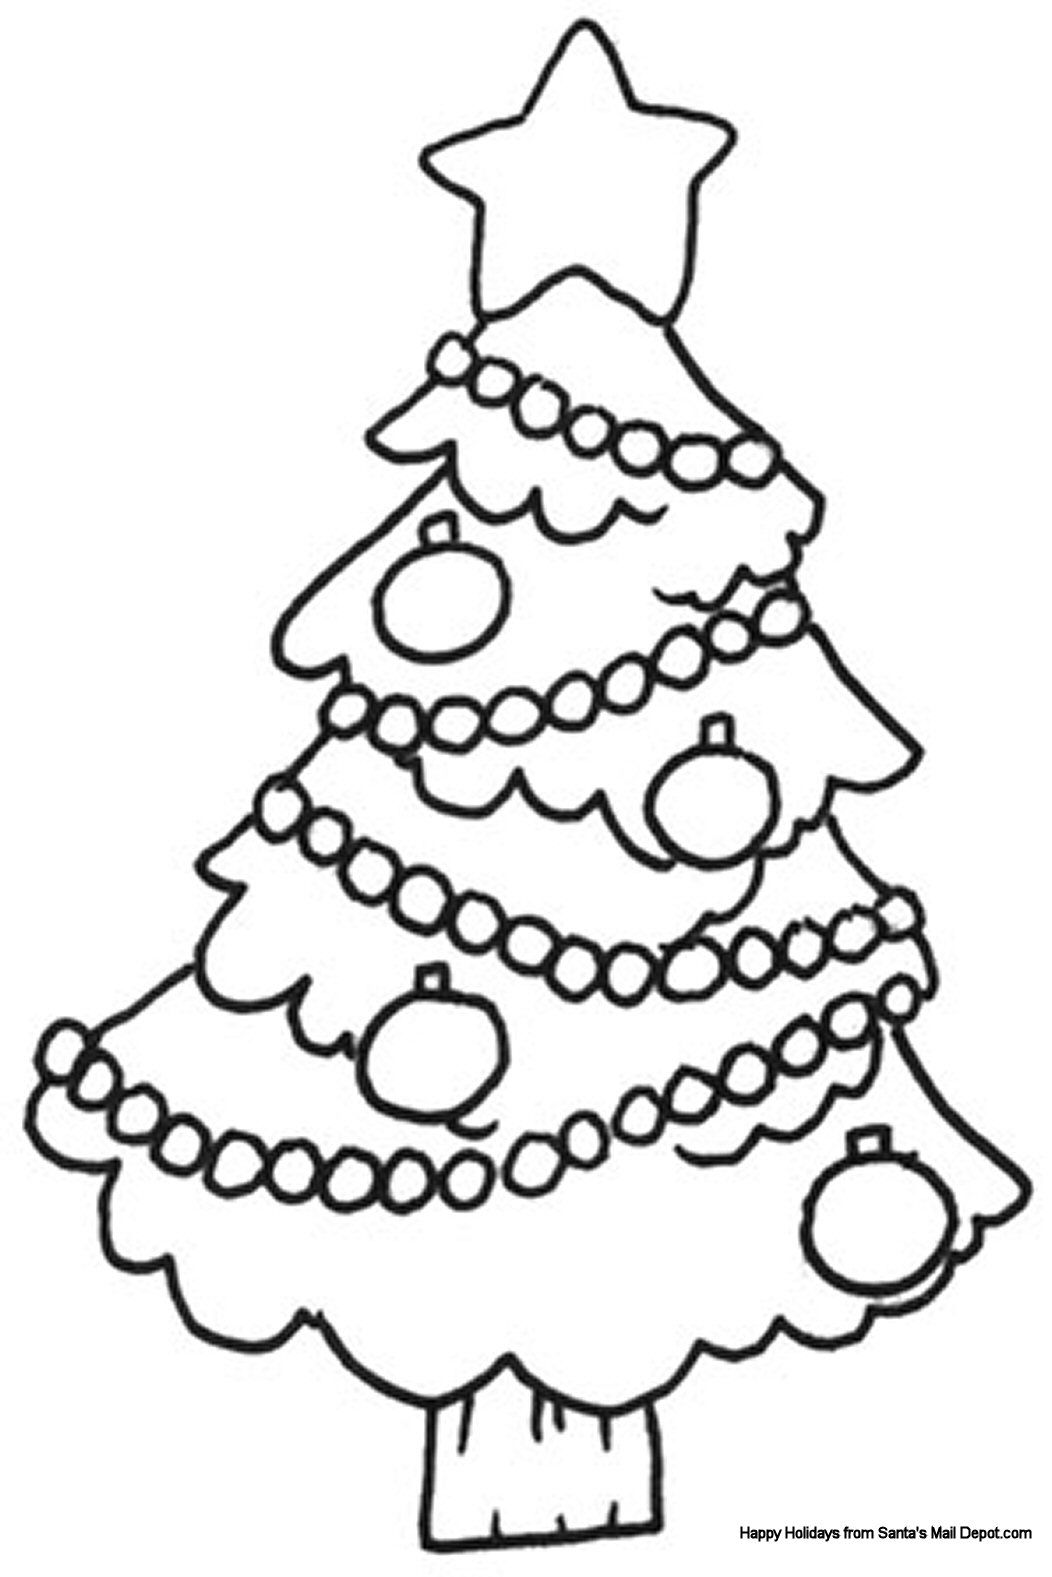 Christmas Coloring Pages Free Google Image Result For Httpwww.freecoloringprintableimg